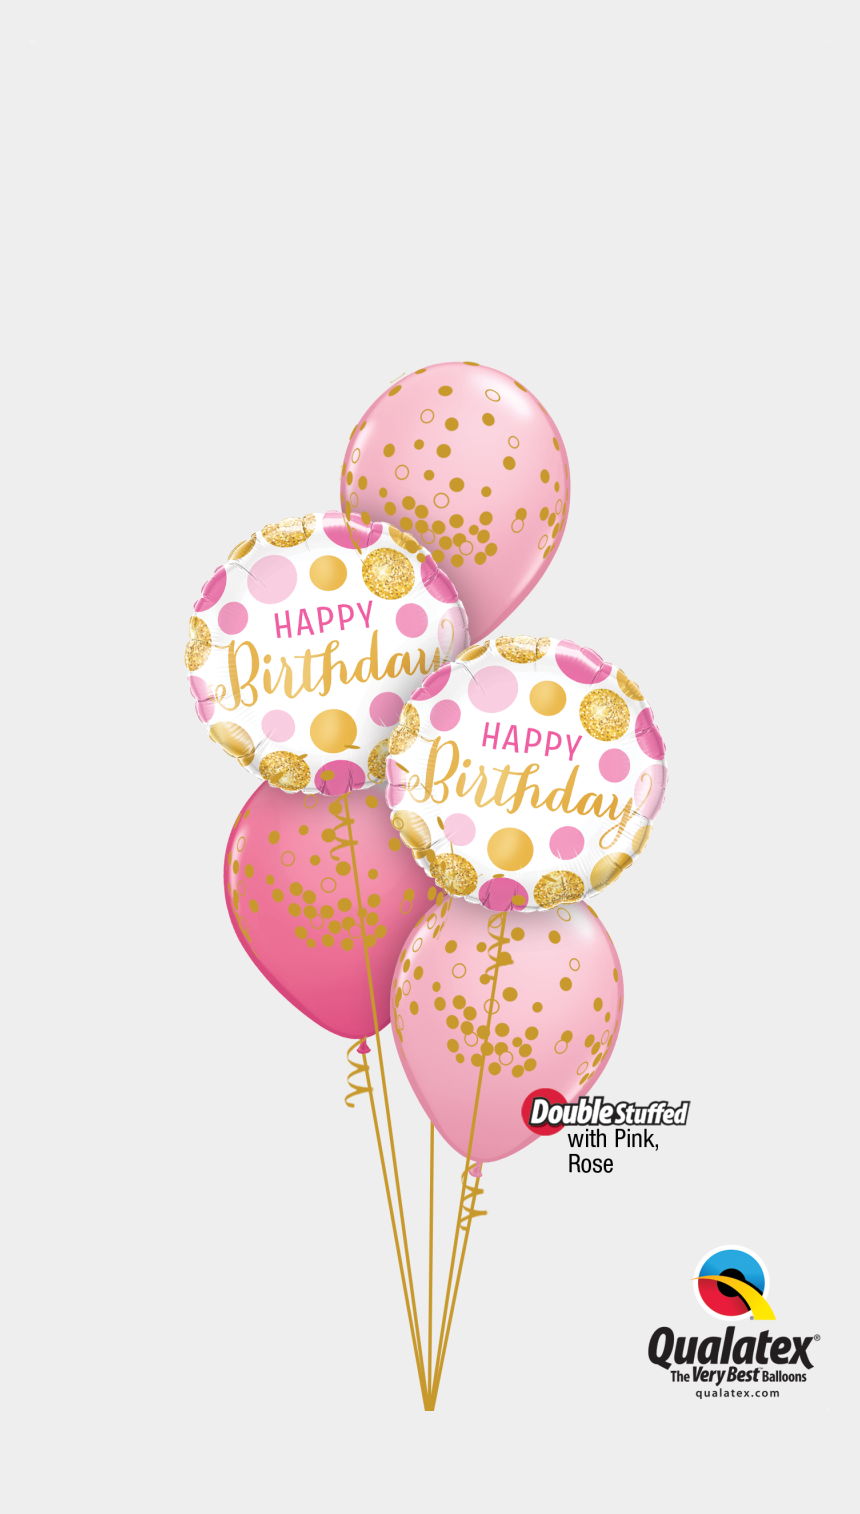 confetti clipart, Cartoons - Confetti Clipart Birthday Accessory - Balloons Gold And Pink Clipart